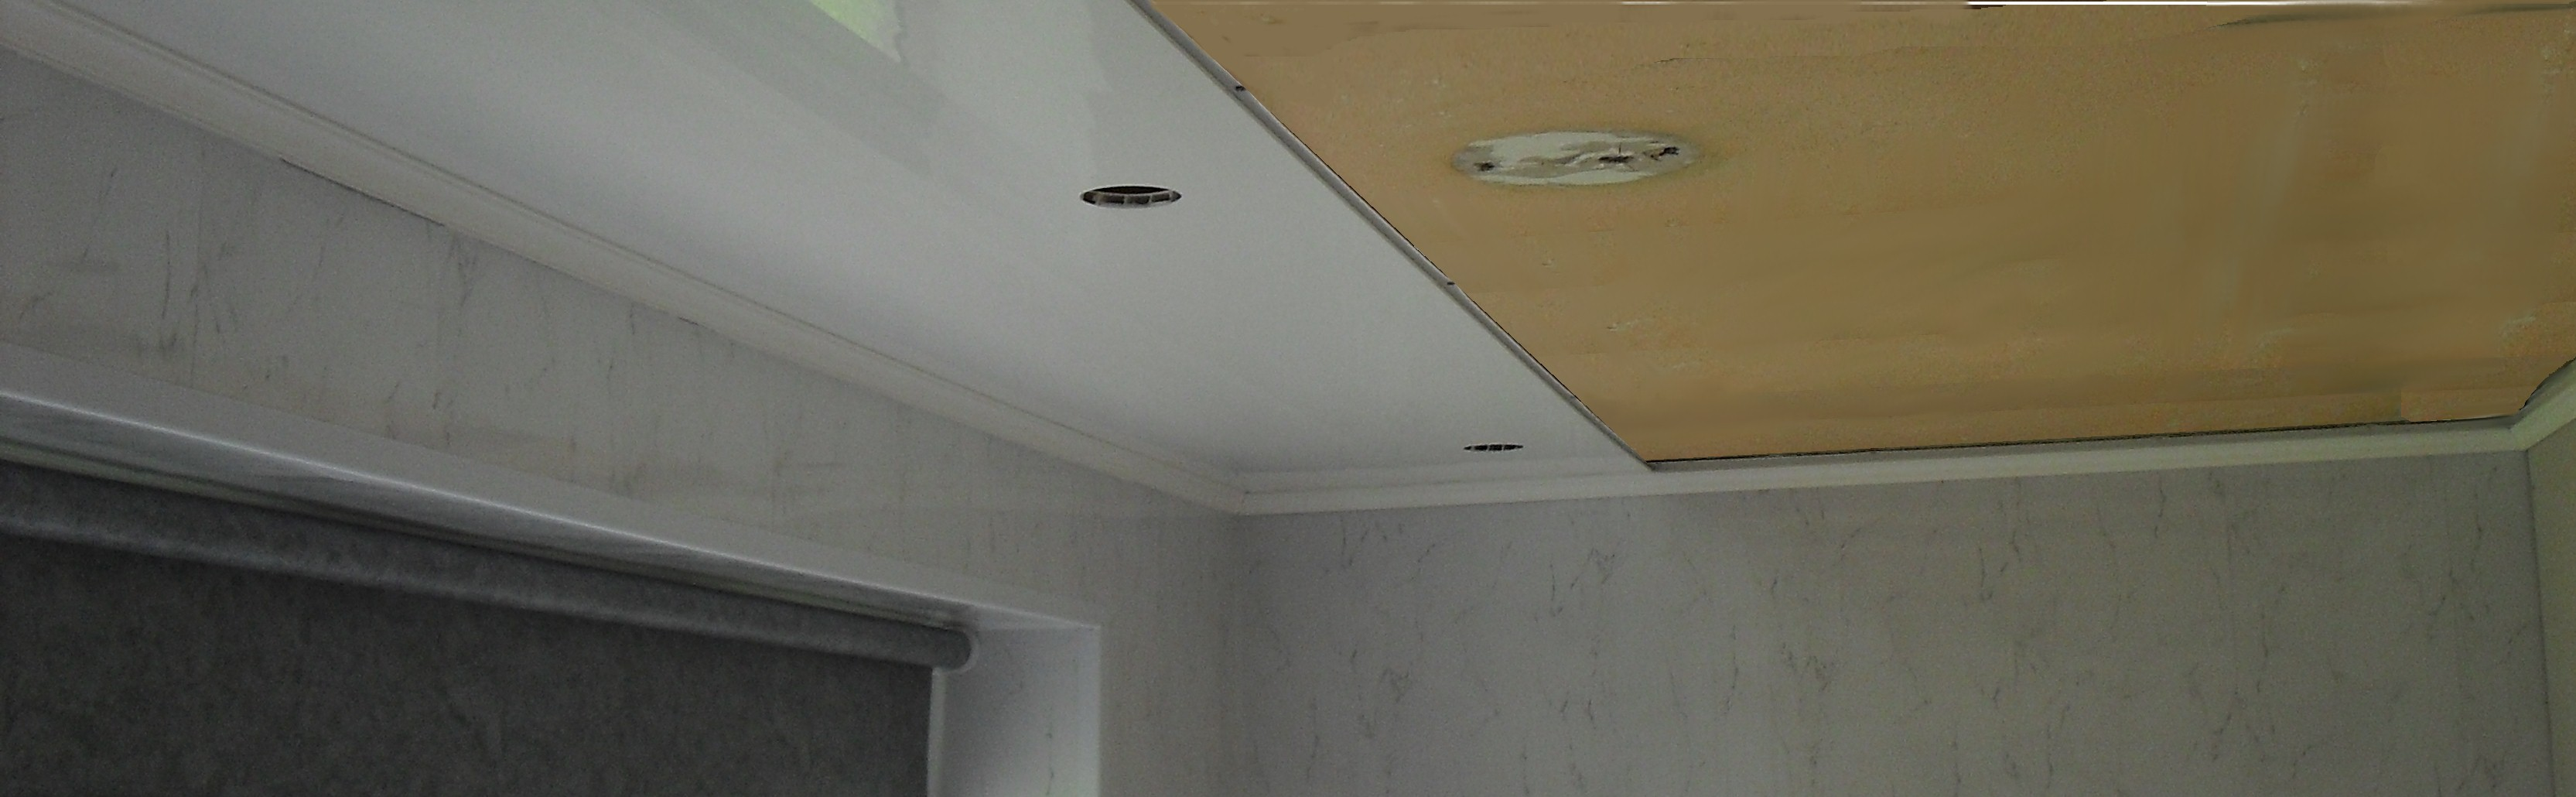 how to fit ceiling panels